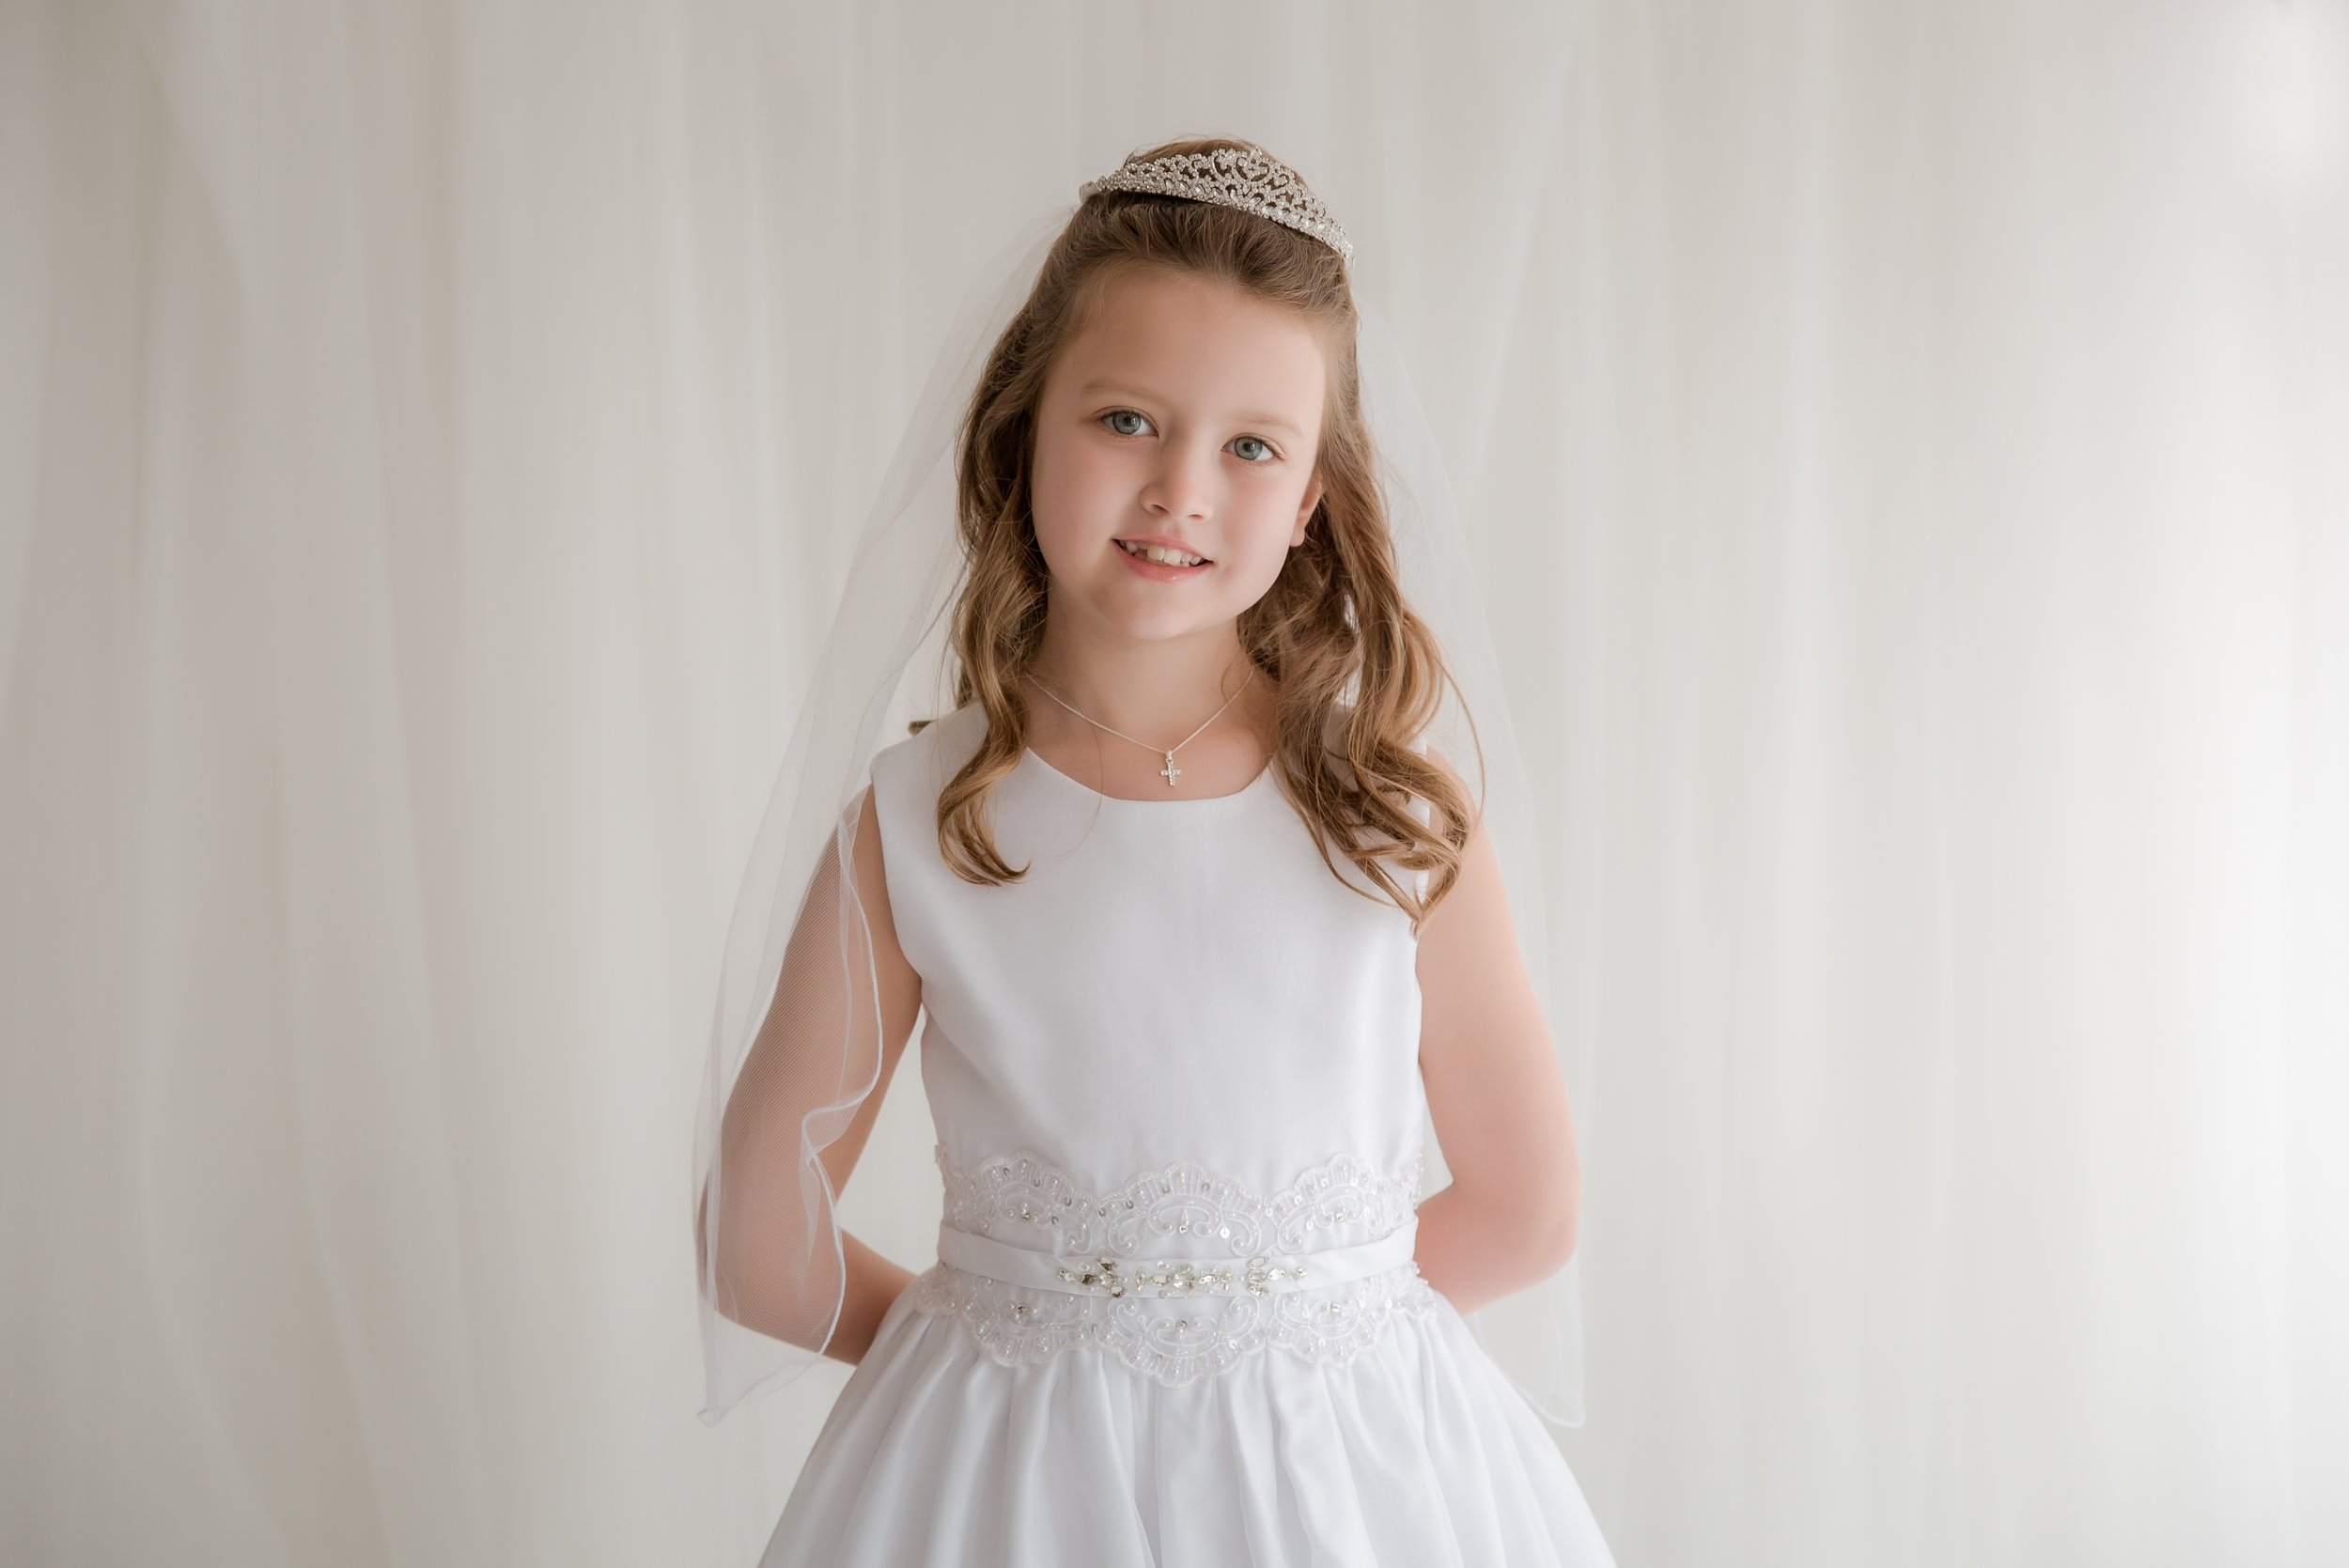 7 year old holy communion portrait